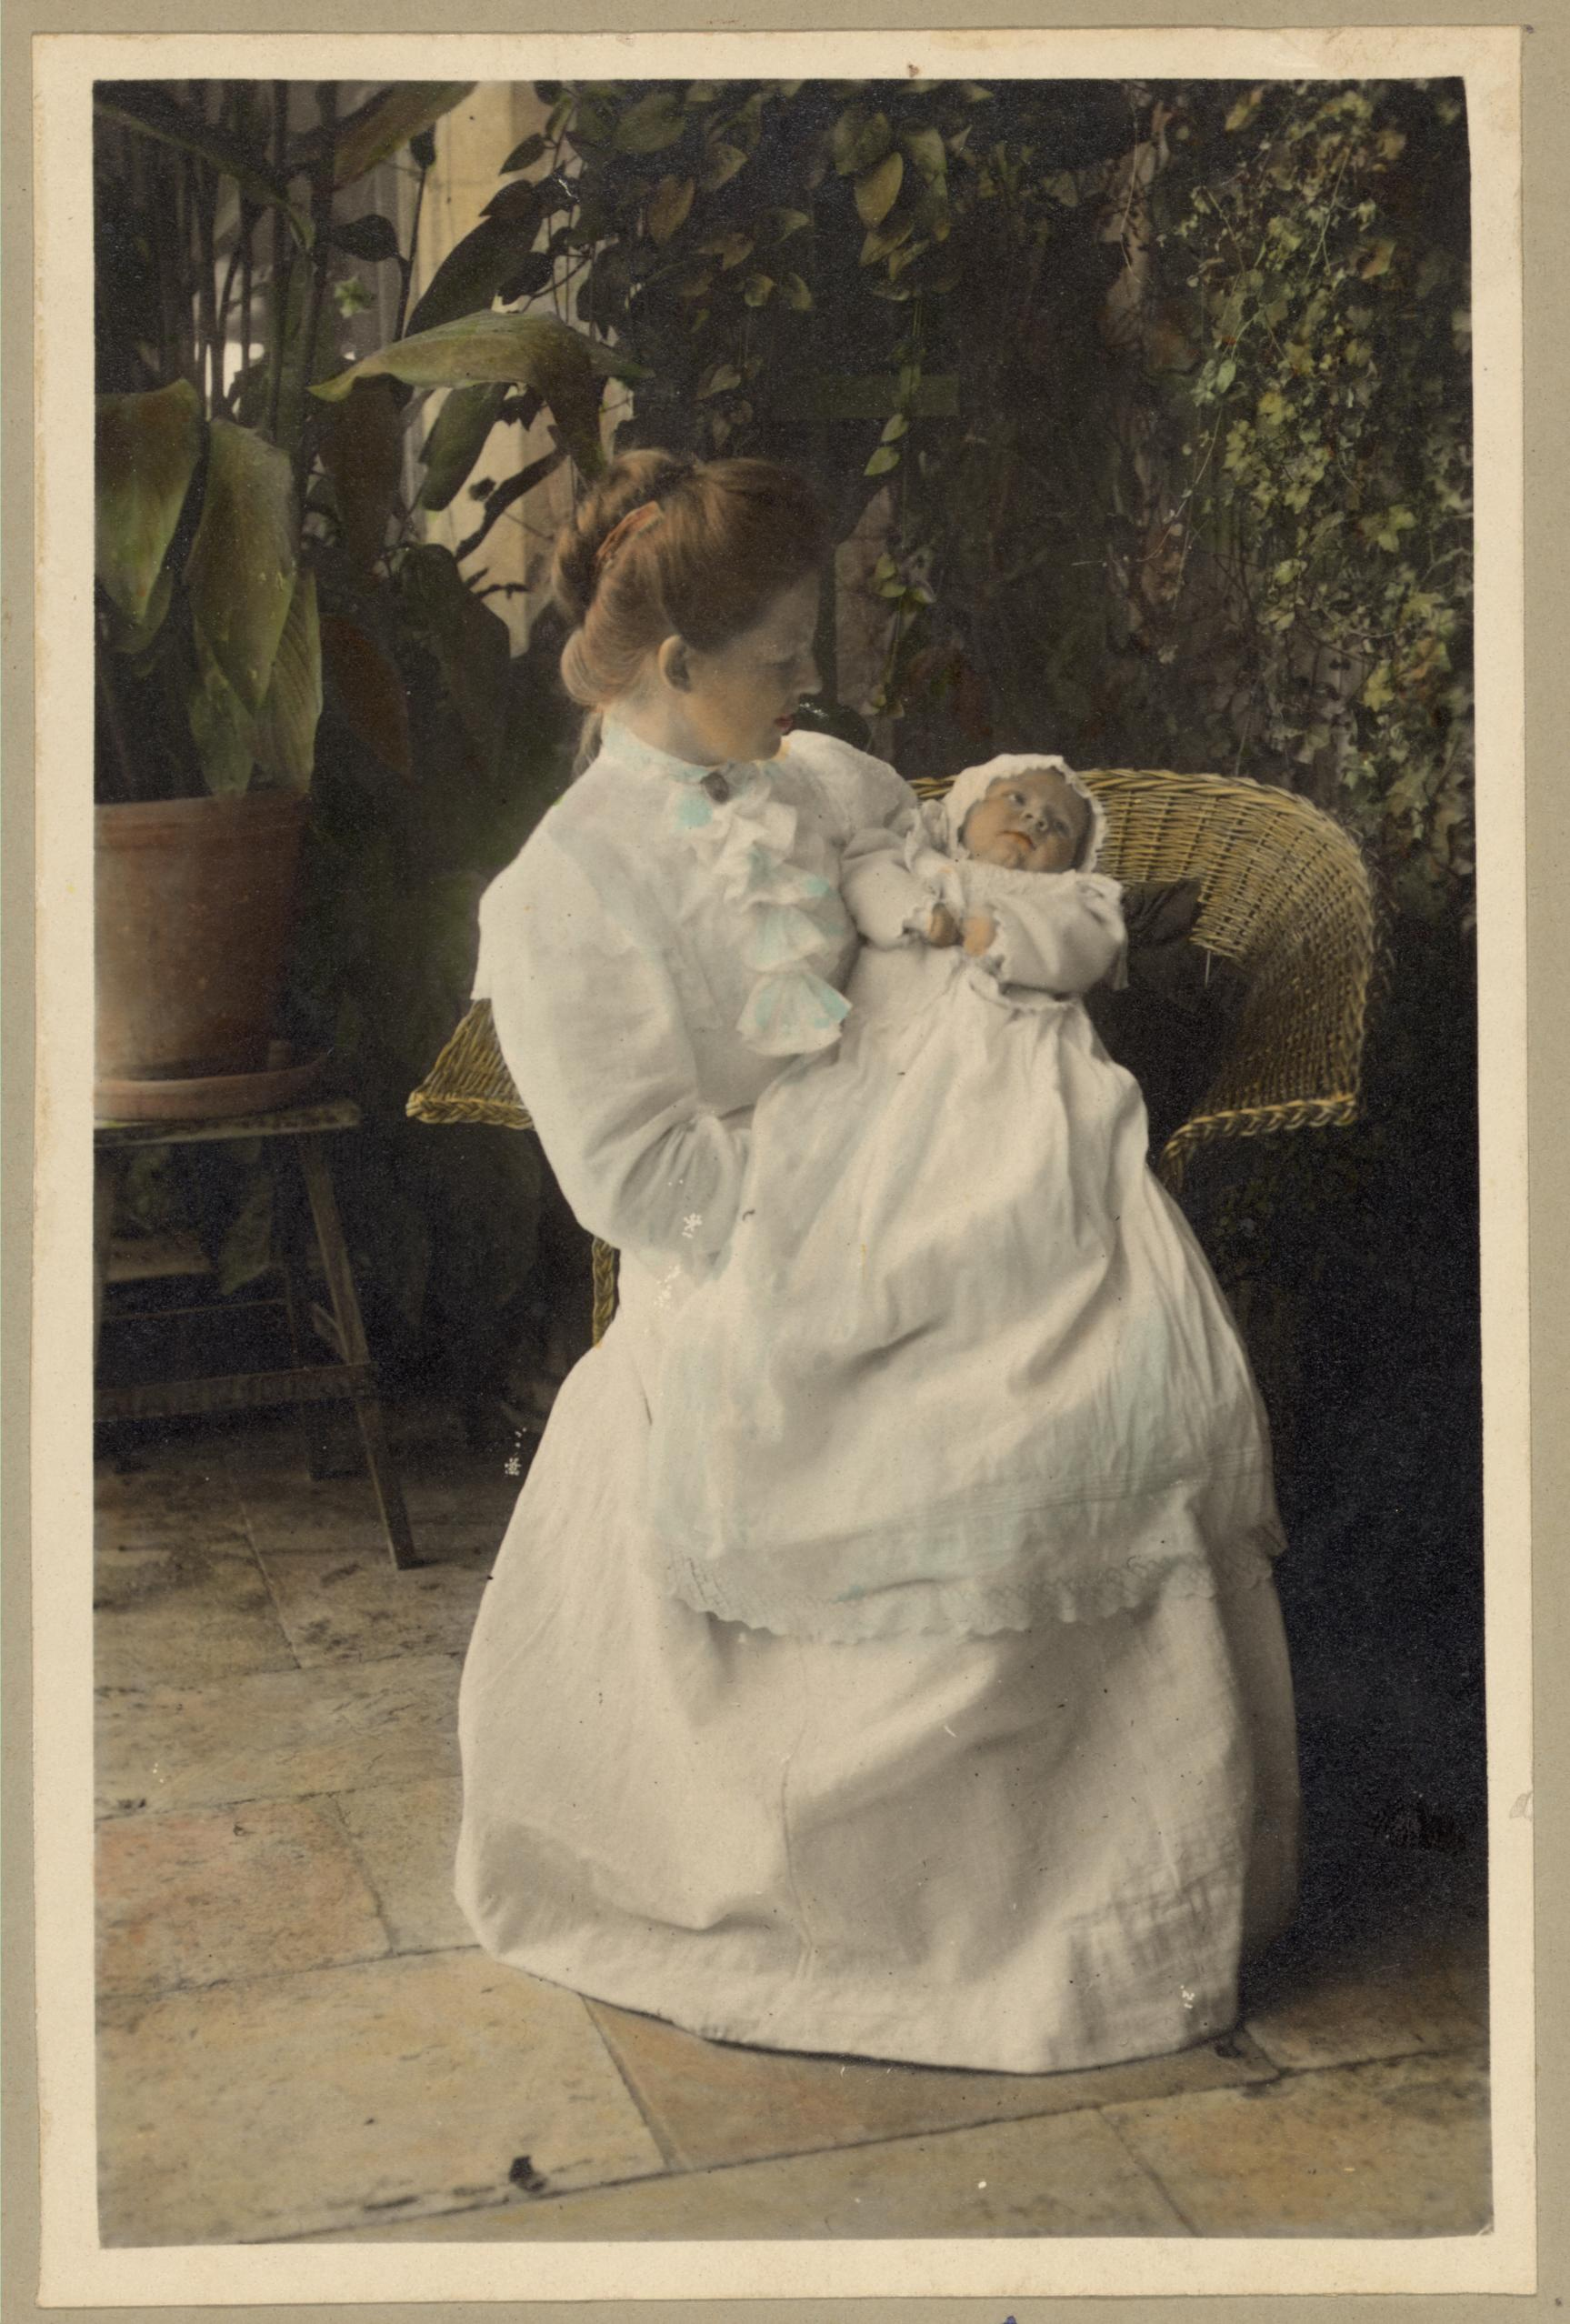 Vintage Portrait Of A Mother Holding A Baby Child On The